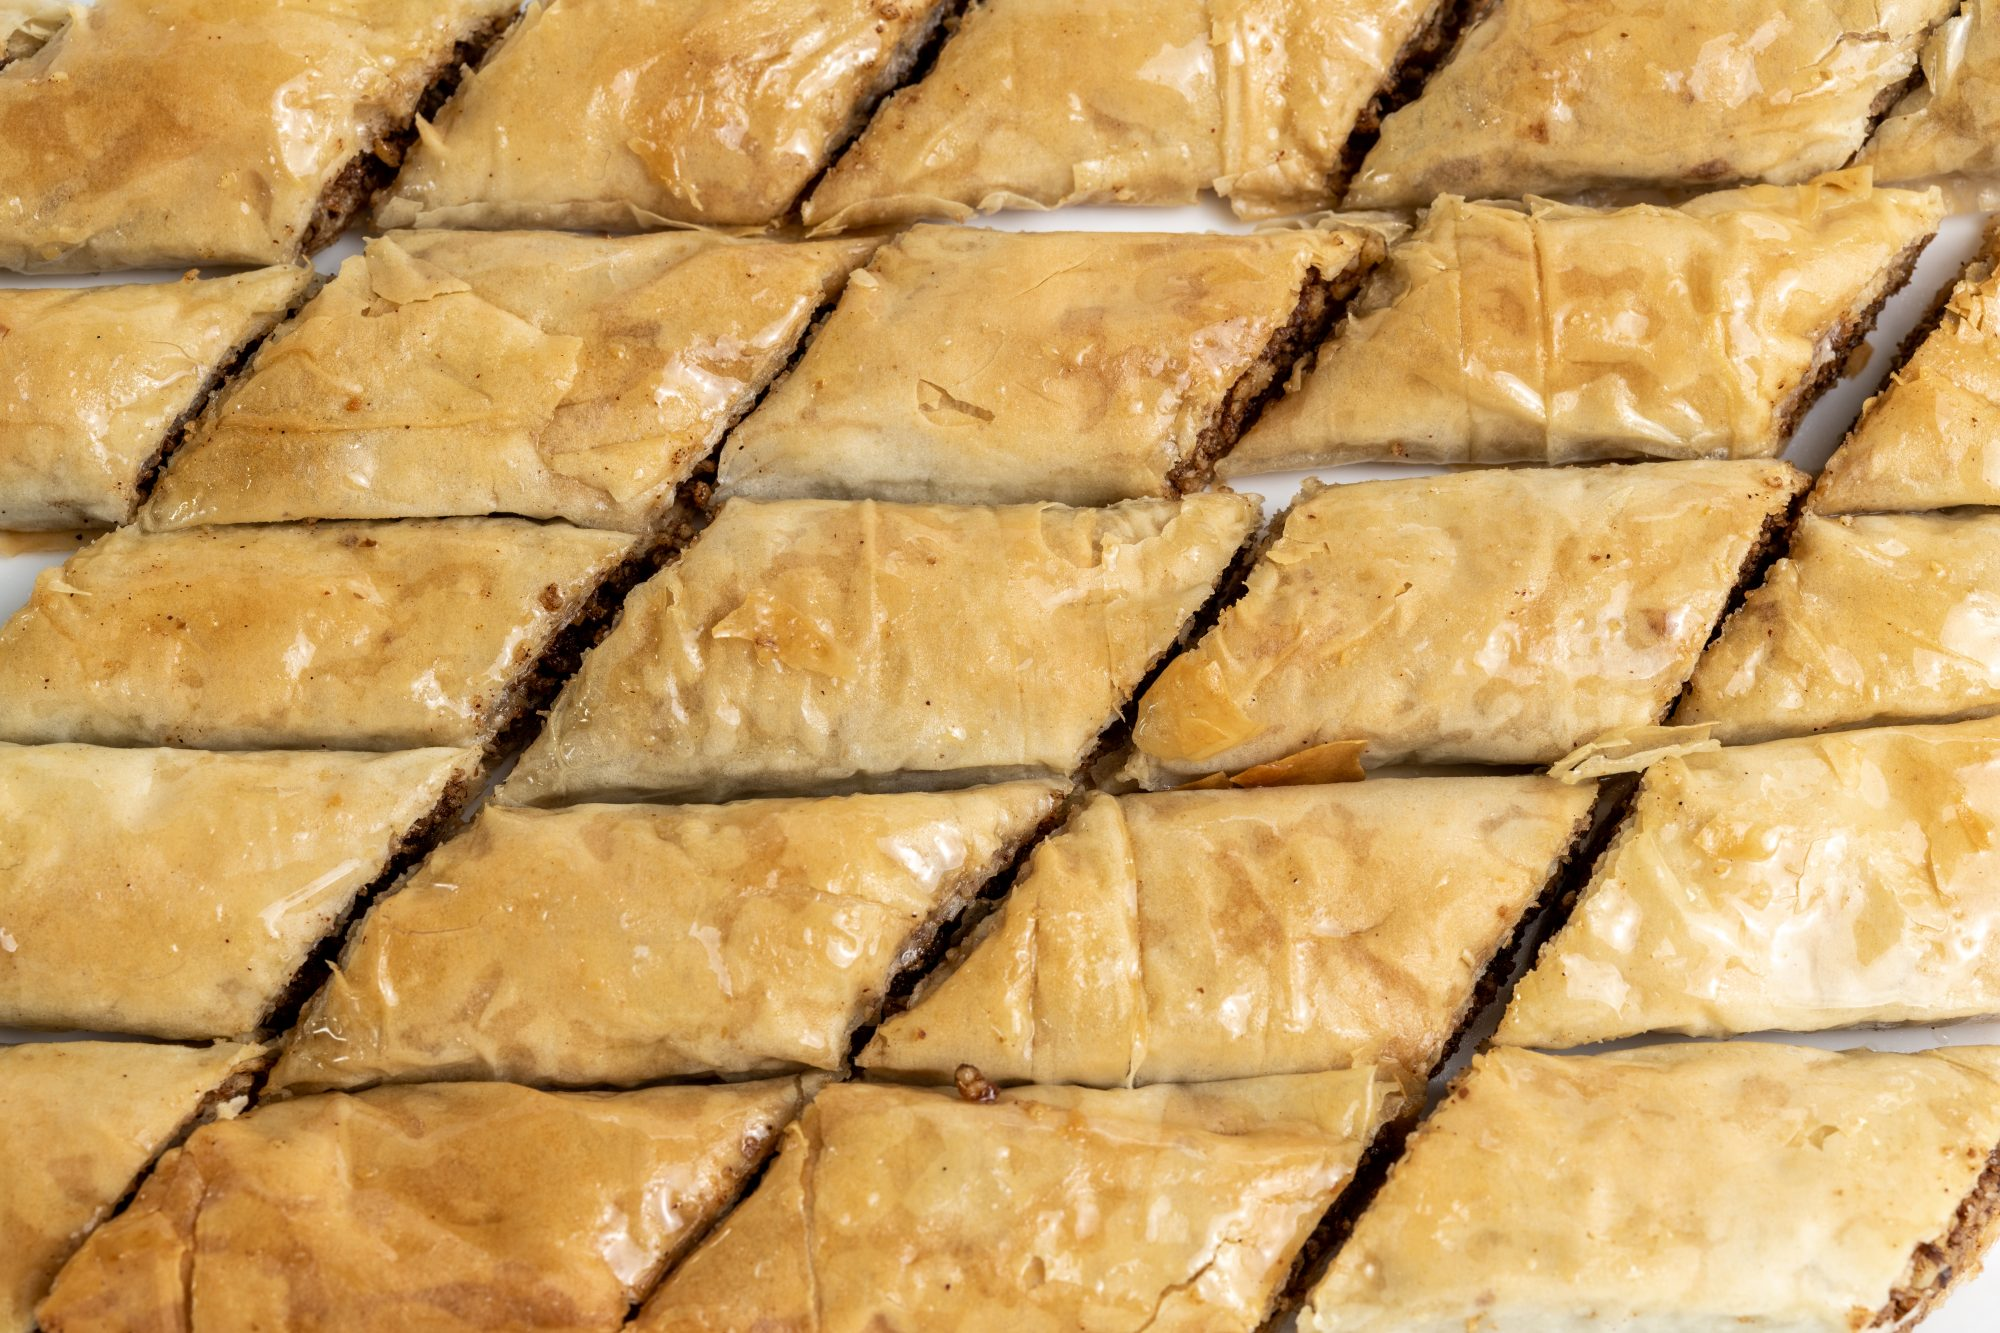 Diamond baklava Getty 5/19/20